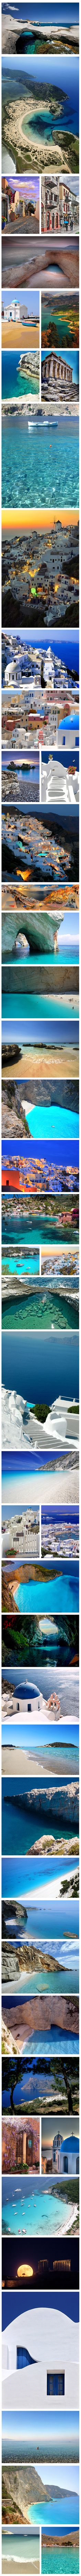 """Part 1 of 2 - 100 Most Stunning Images of Greece""  #Greece"